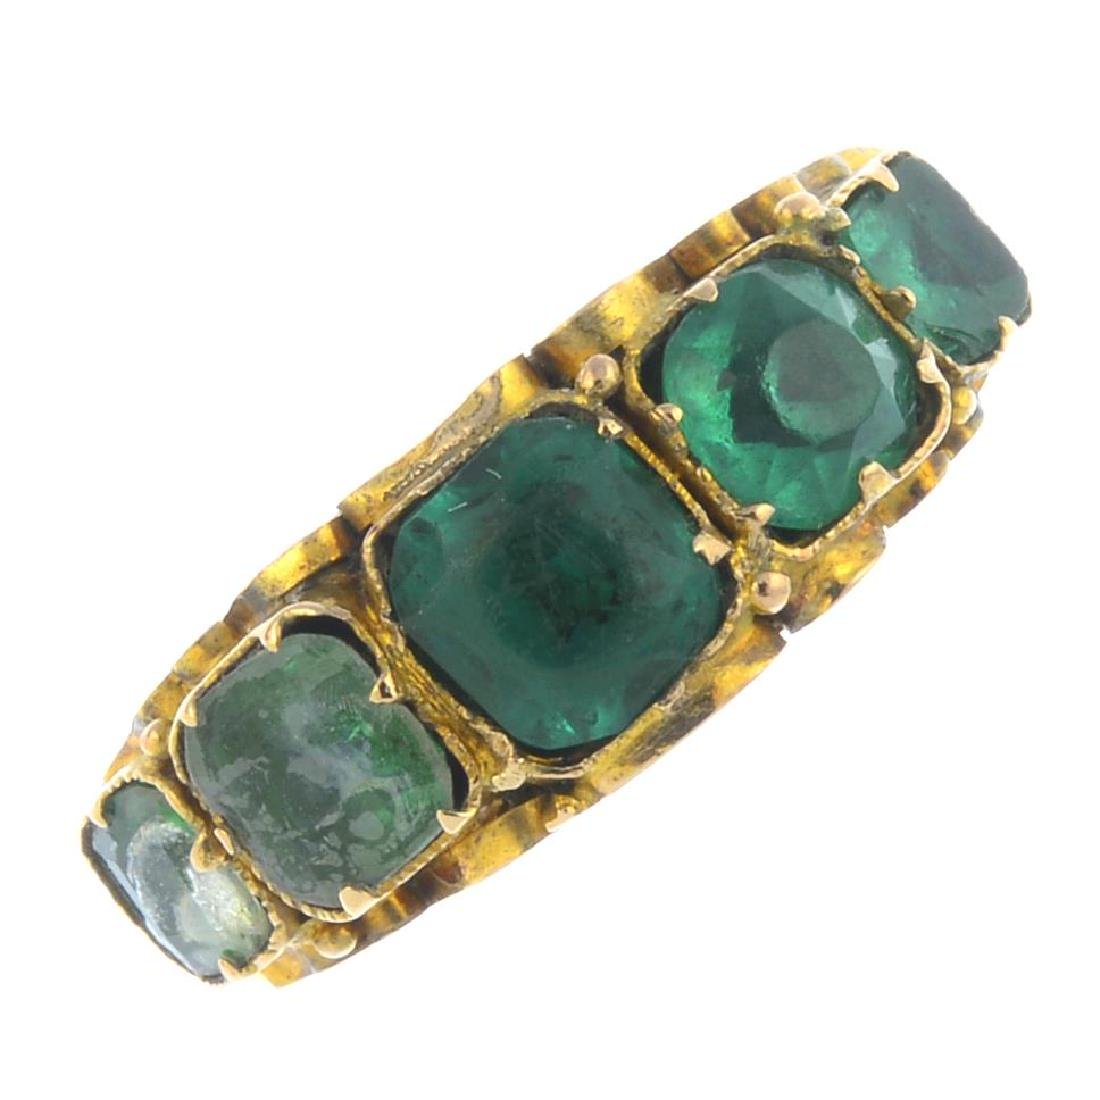 A mid Victorian 15ct gold soude emerald and paste